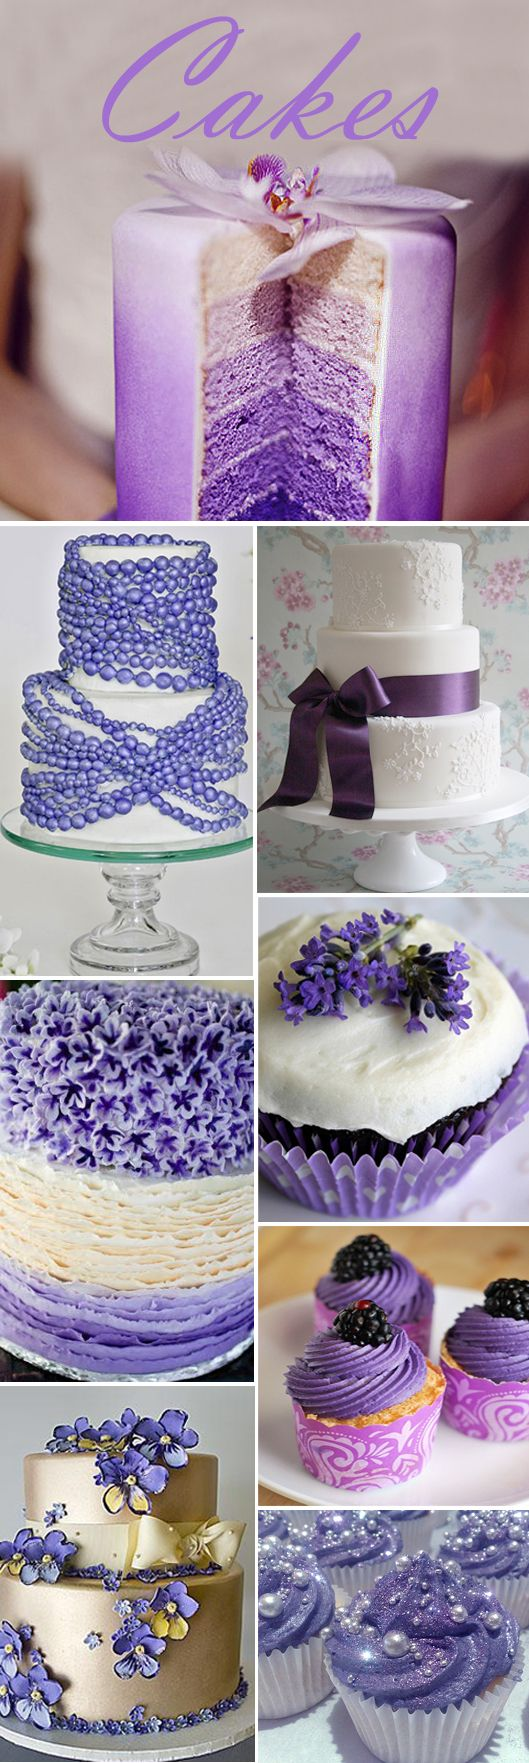 Wedding decorations lilac  Your Wedding Color  Purple  Collage Cake and Wedding cake